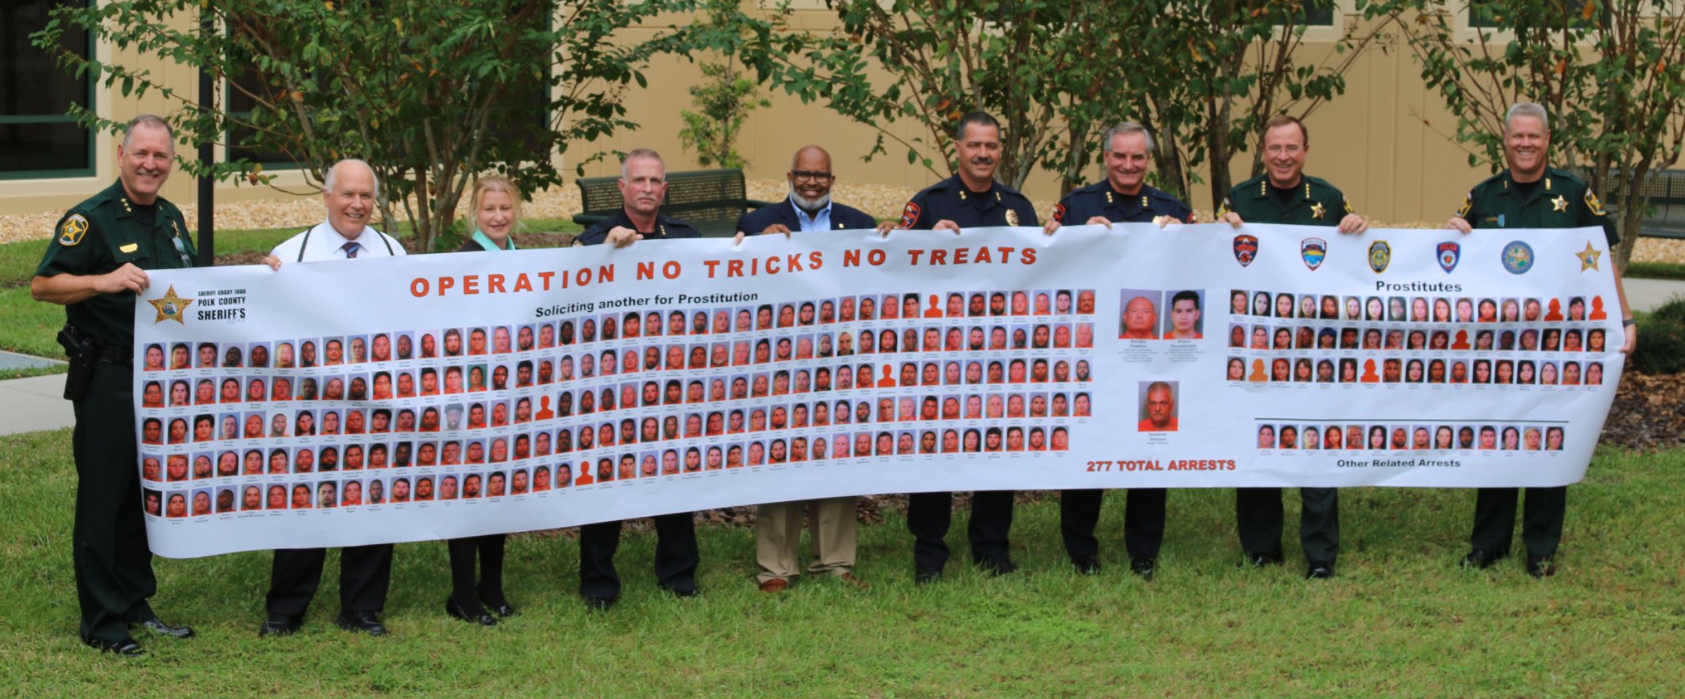 Operation No Tricks, No Treats arrests. (Polk County Sheriff's Office)